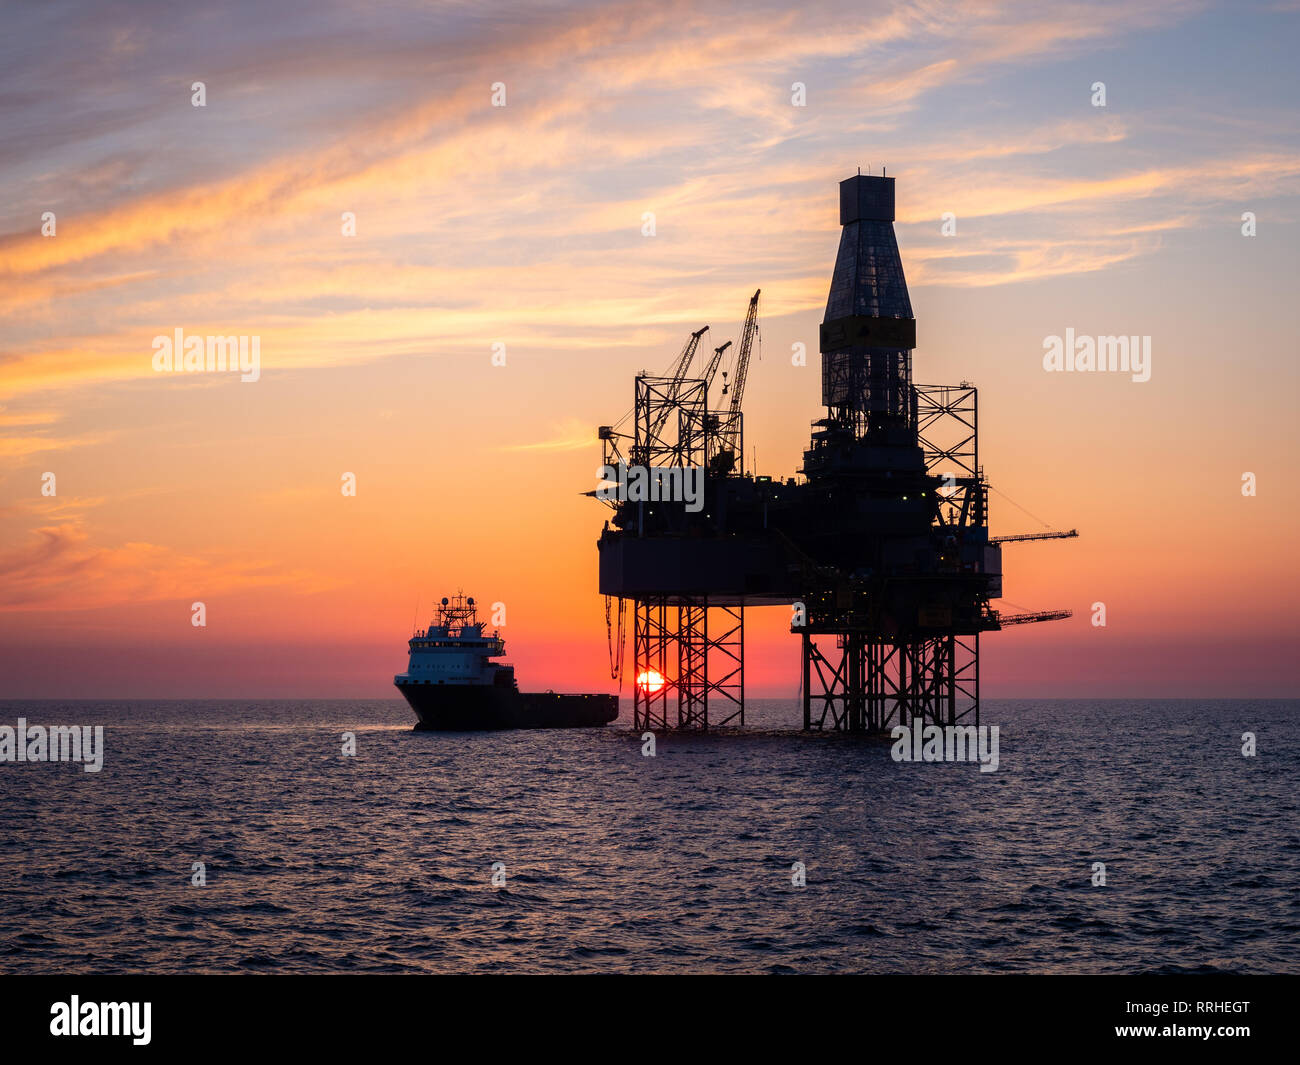 A oil platform in the North sea with a supply vessel alongside during sunset. Stock Photo